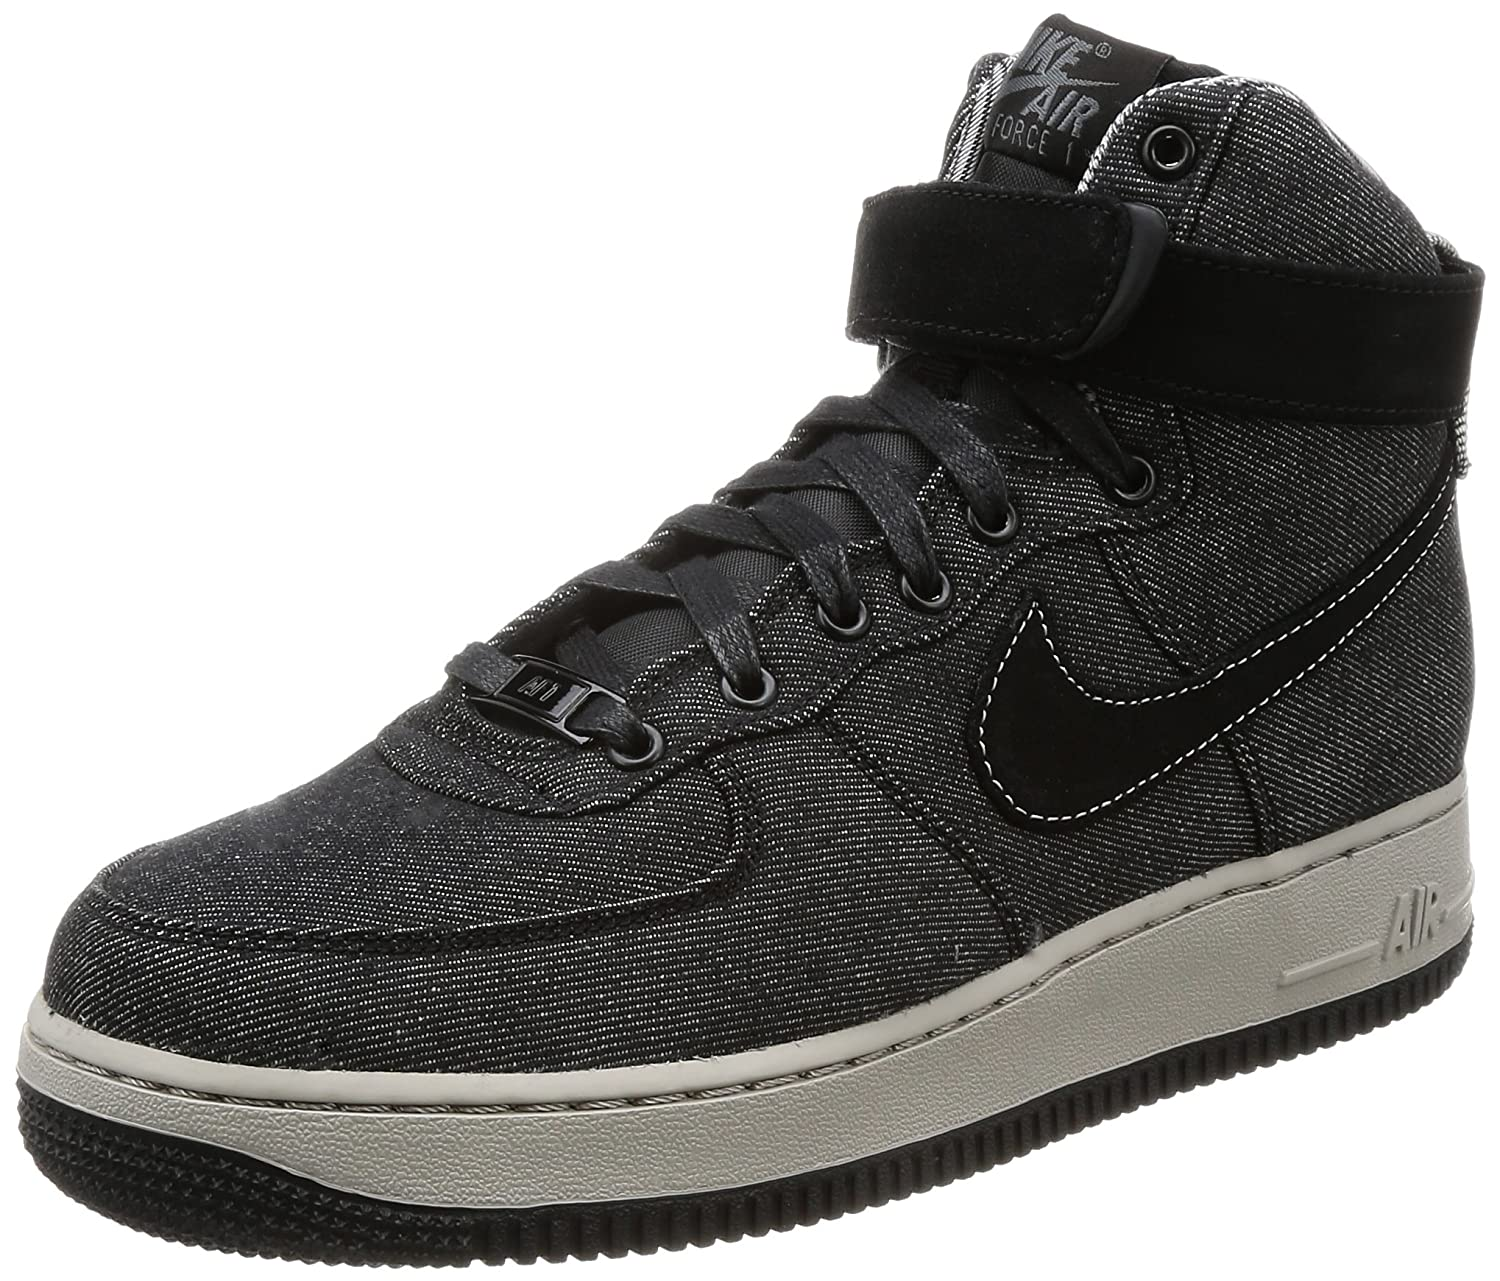 best service b3dc0 0879e Amazon.com   Nike WMNS AIR Force 1 HI SE Womens Fashion-Sneakers 860544-003 11.5  - Black Dark Grey-Cobblestone   Fashion Sneakers